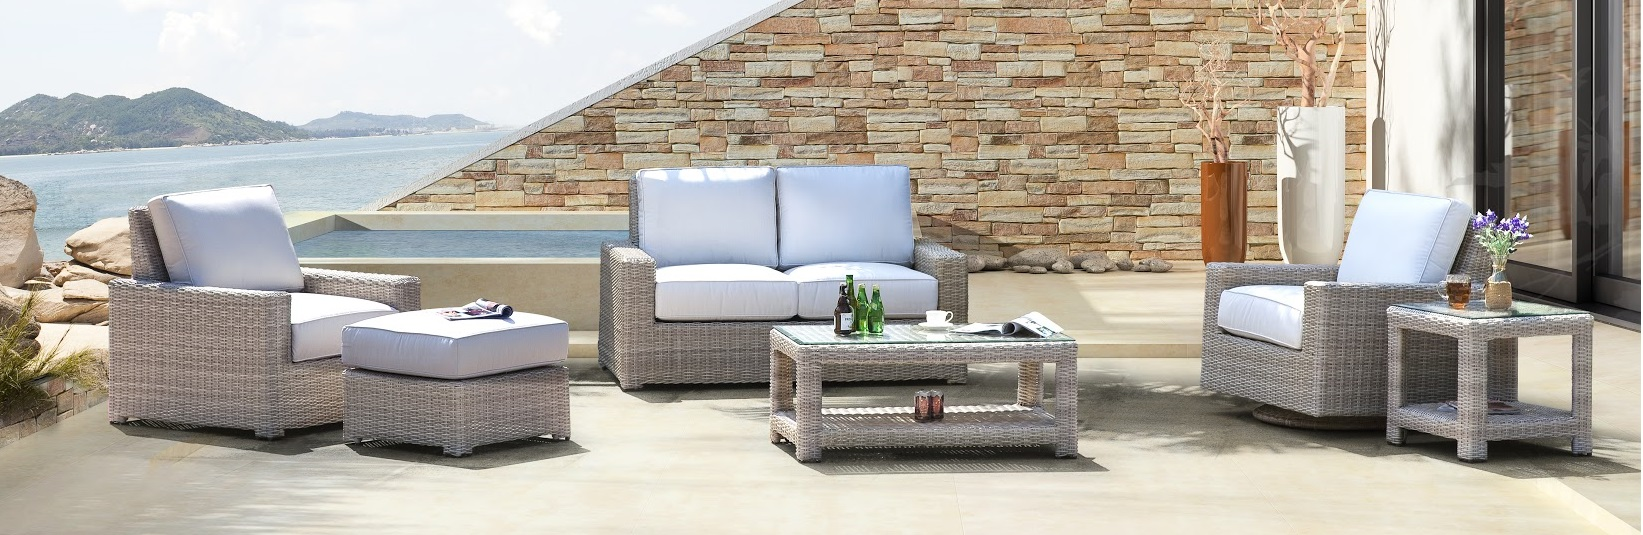 Swell Portofino Replacement Cushions Patio Furniture Cushions Beutiful Home Inspiration Ommitmahrainfo